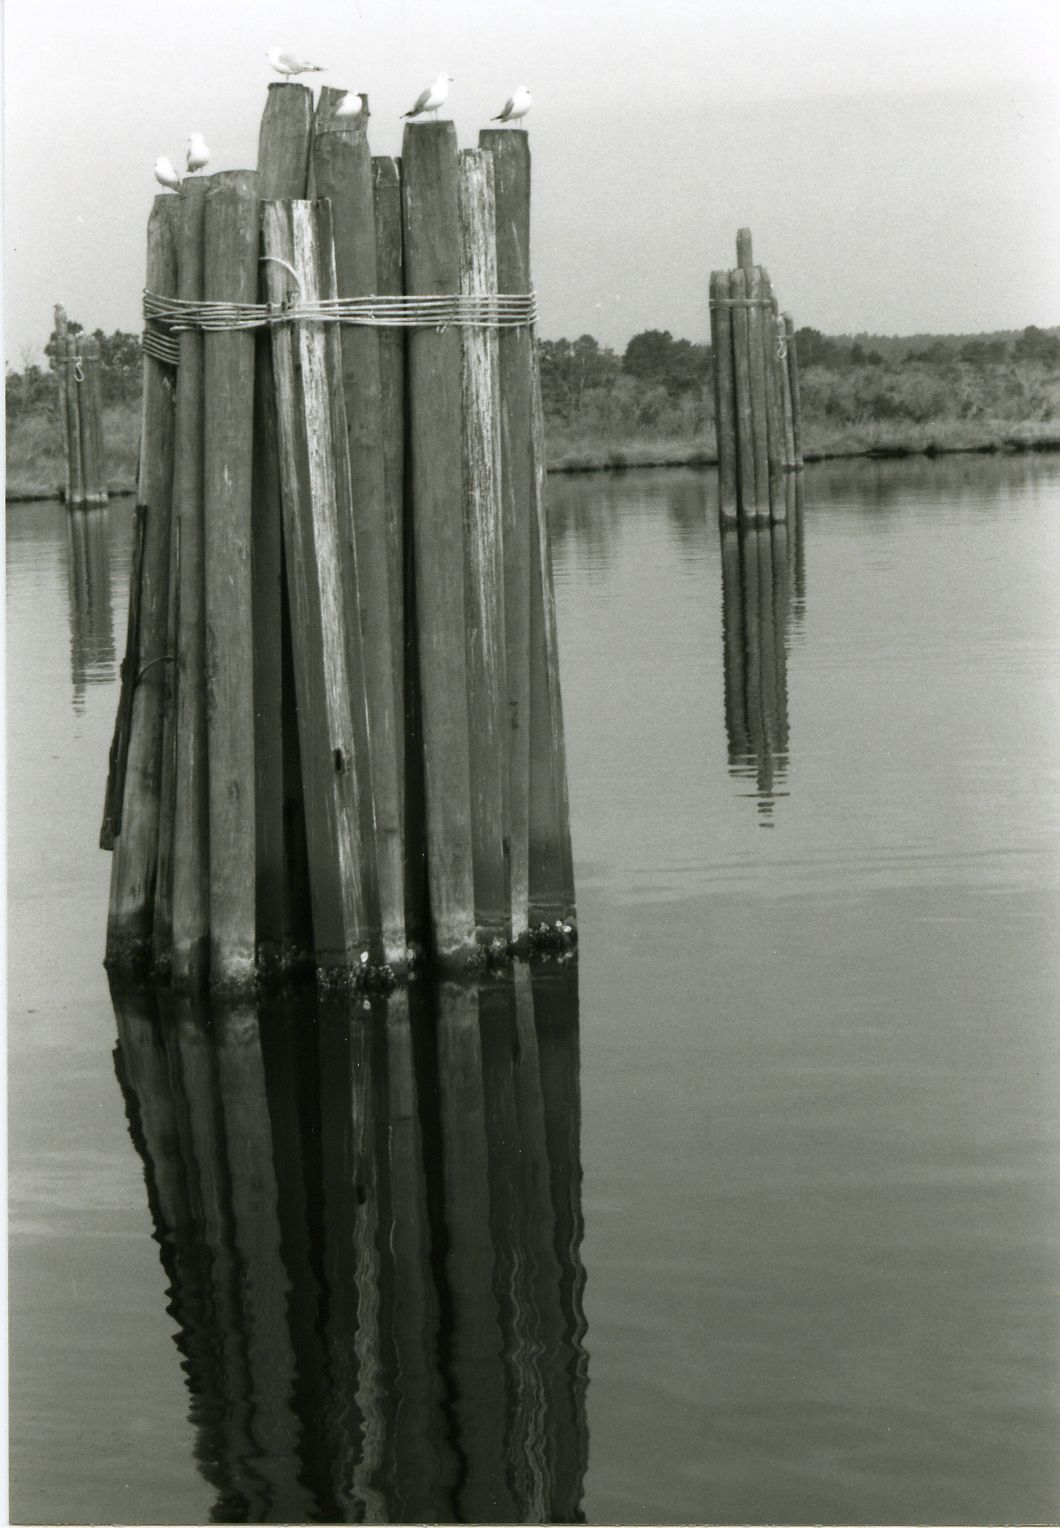 Seagulls on piling.